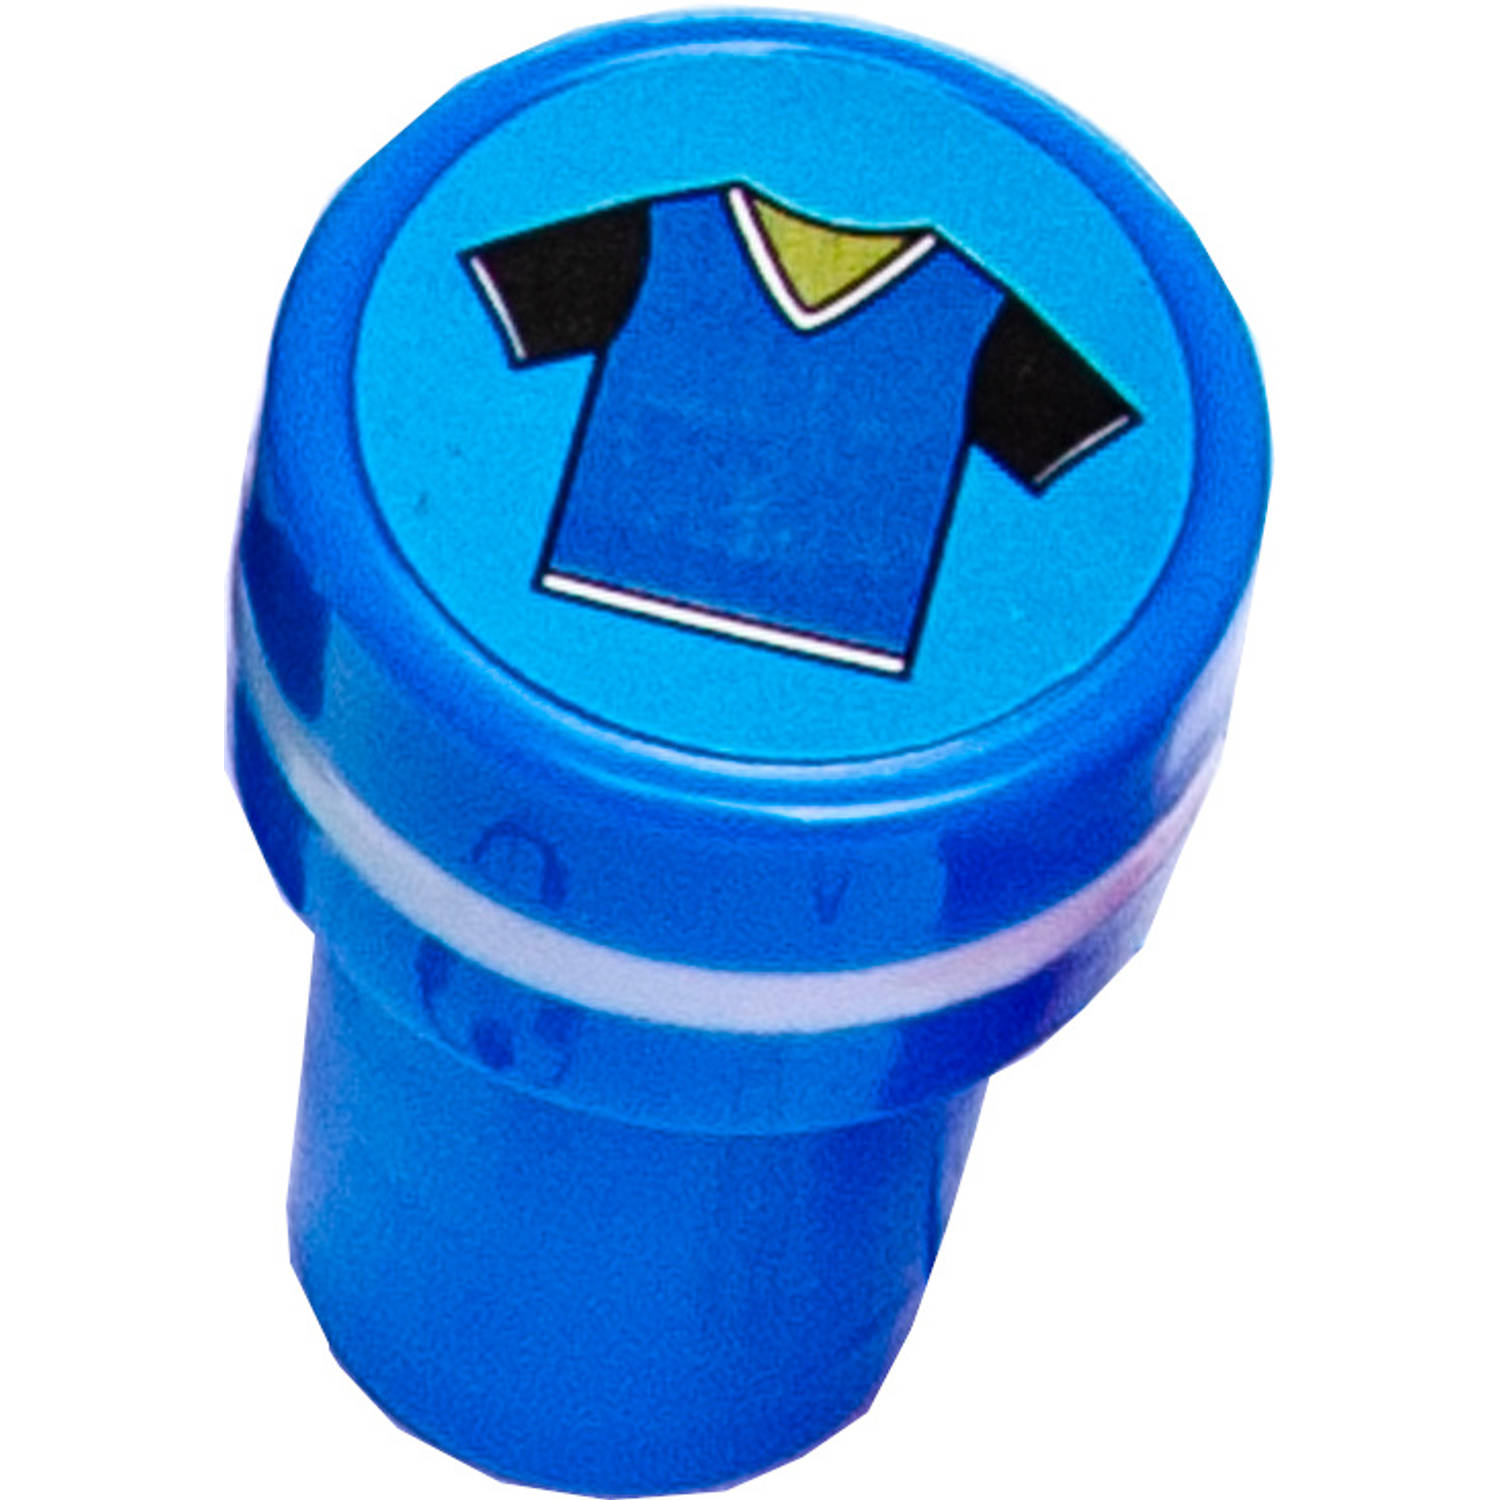 Korting Lg imports Stempel Voetbaltroffee Junior 4 X 2,5 Cm Blauw